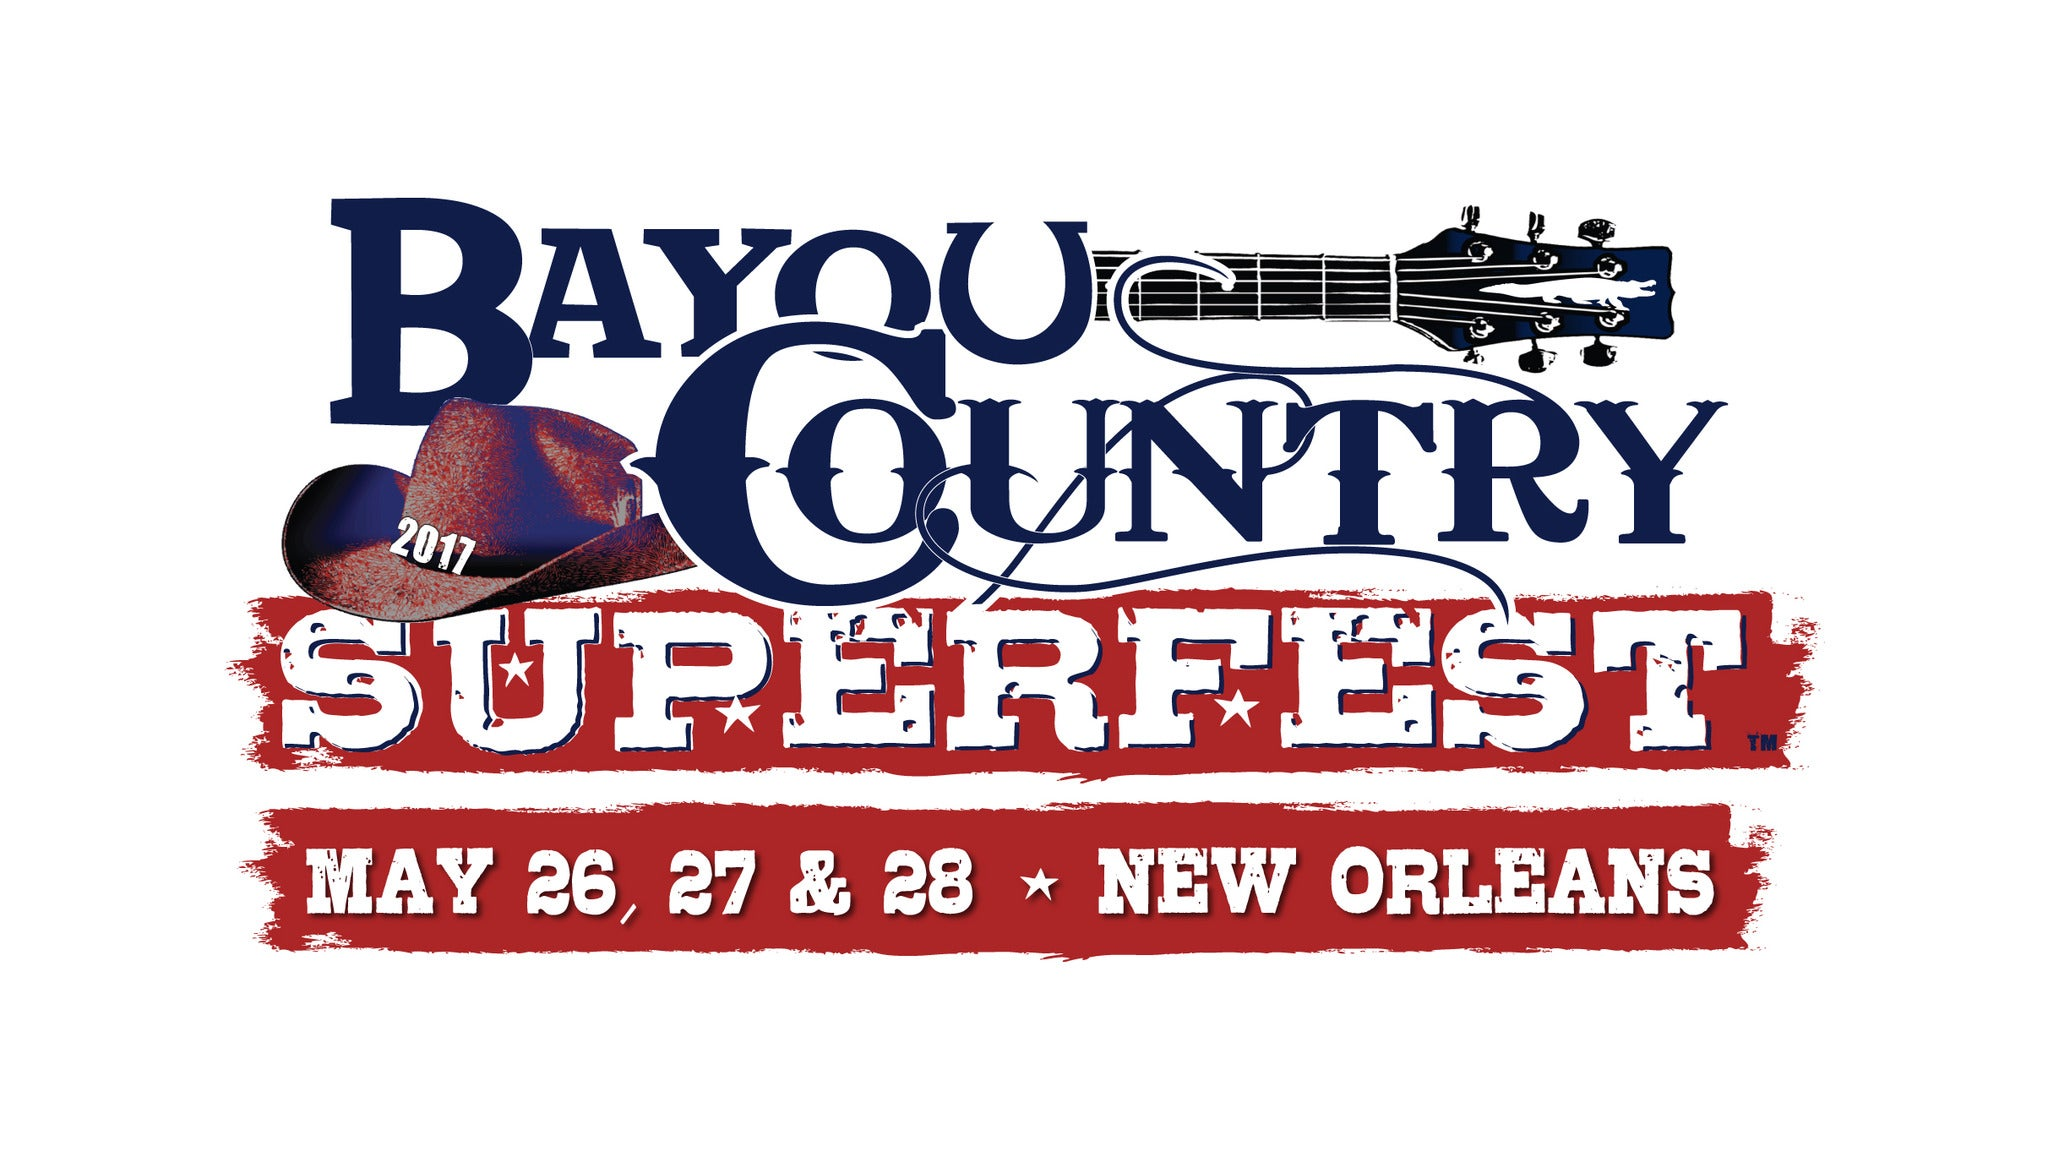 Bayou Country Superfest - Sunday at Mercedes-Benz Superdome